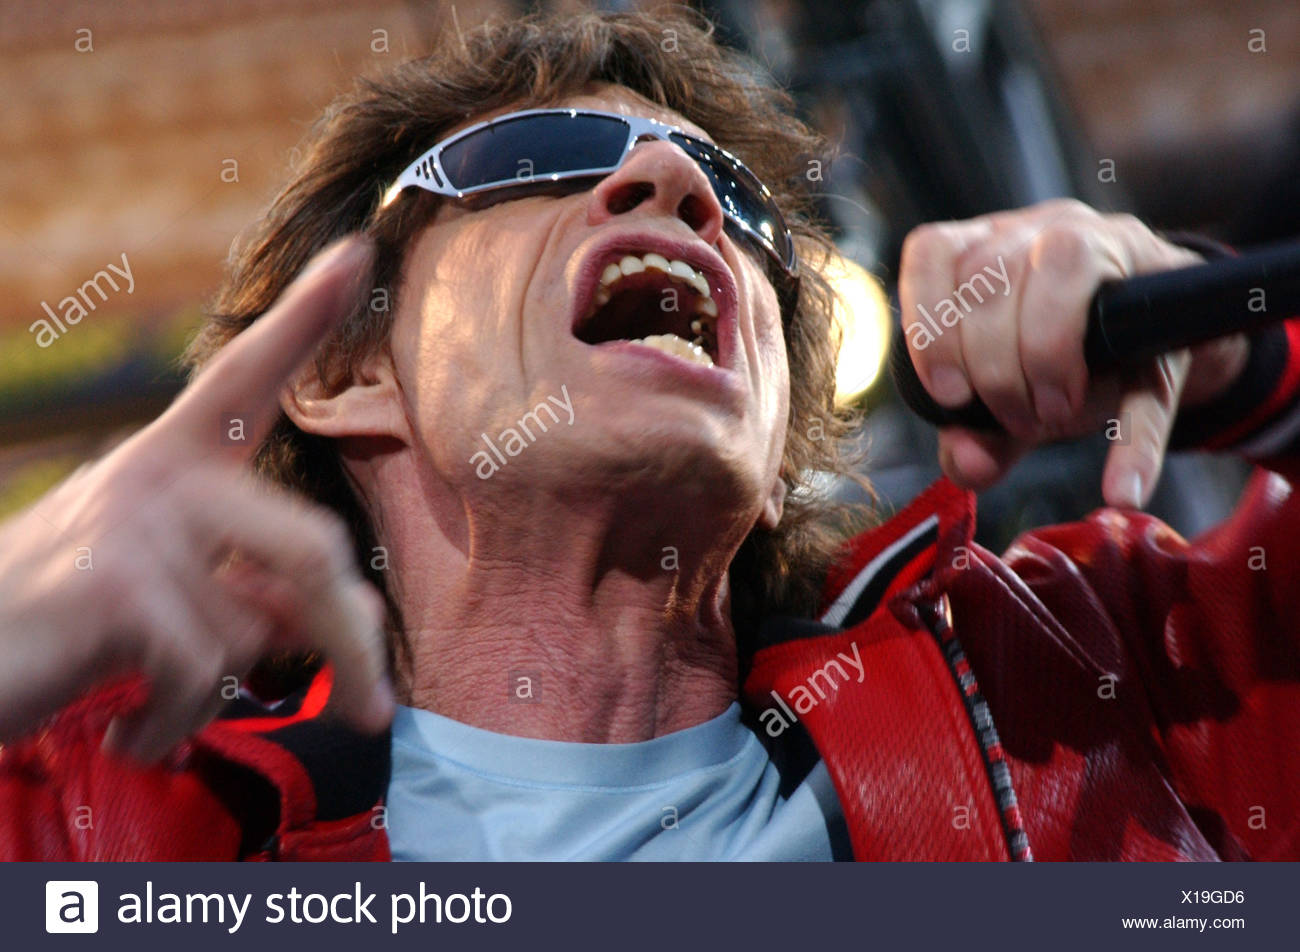 Mick Jagger during a Rolling Stones concert in Berlin - Stock Image